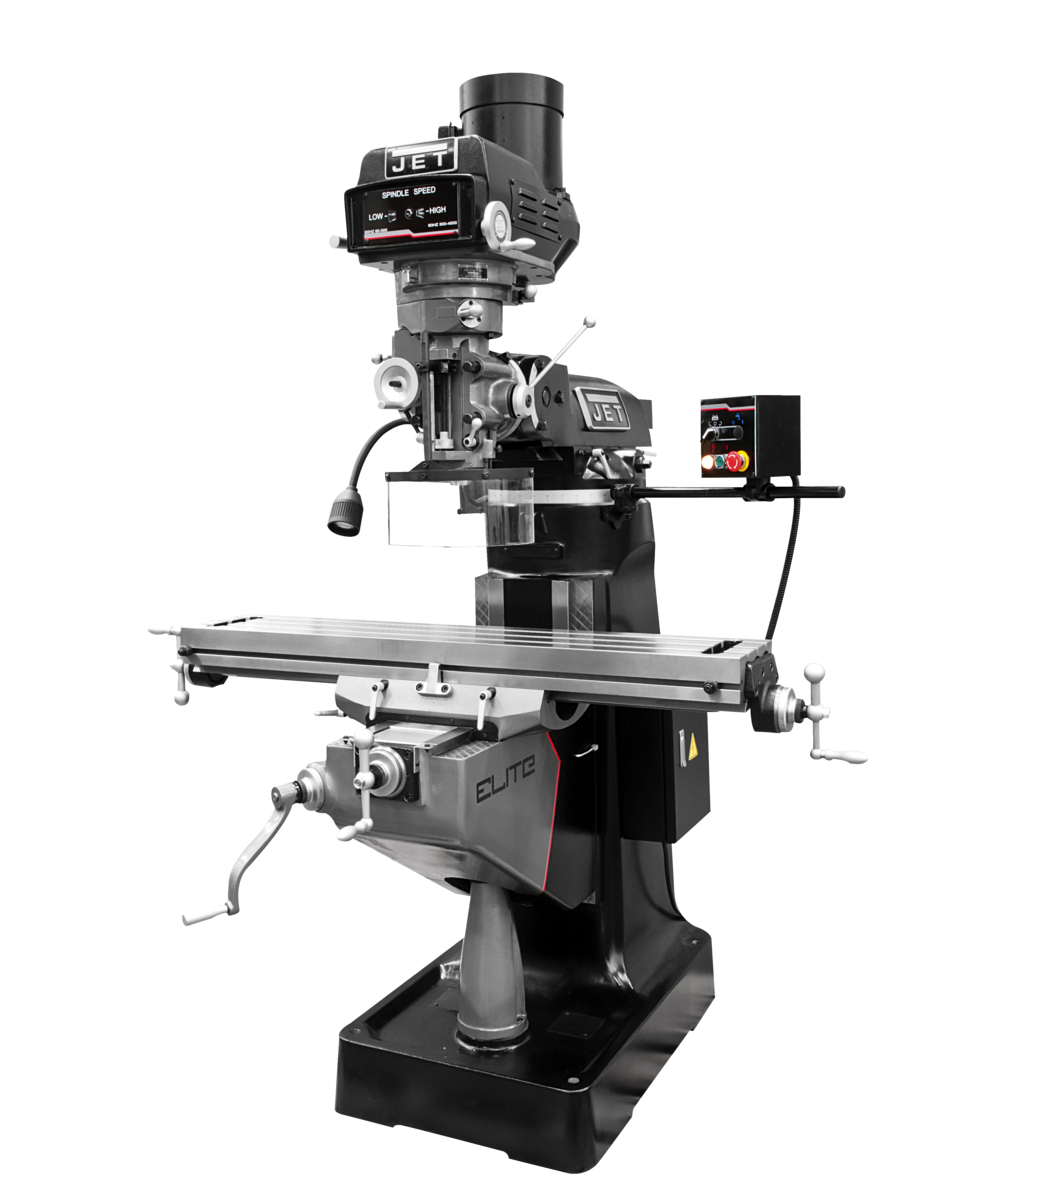 ETM-949 Mill with 2-Axis ACU-RITE 203 DRO and Servo X, Y, Z-Axis Powerfeeds